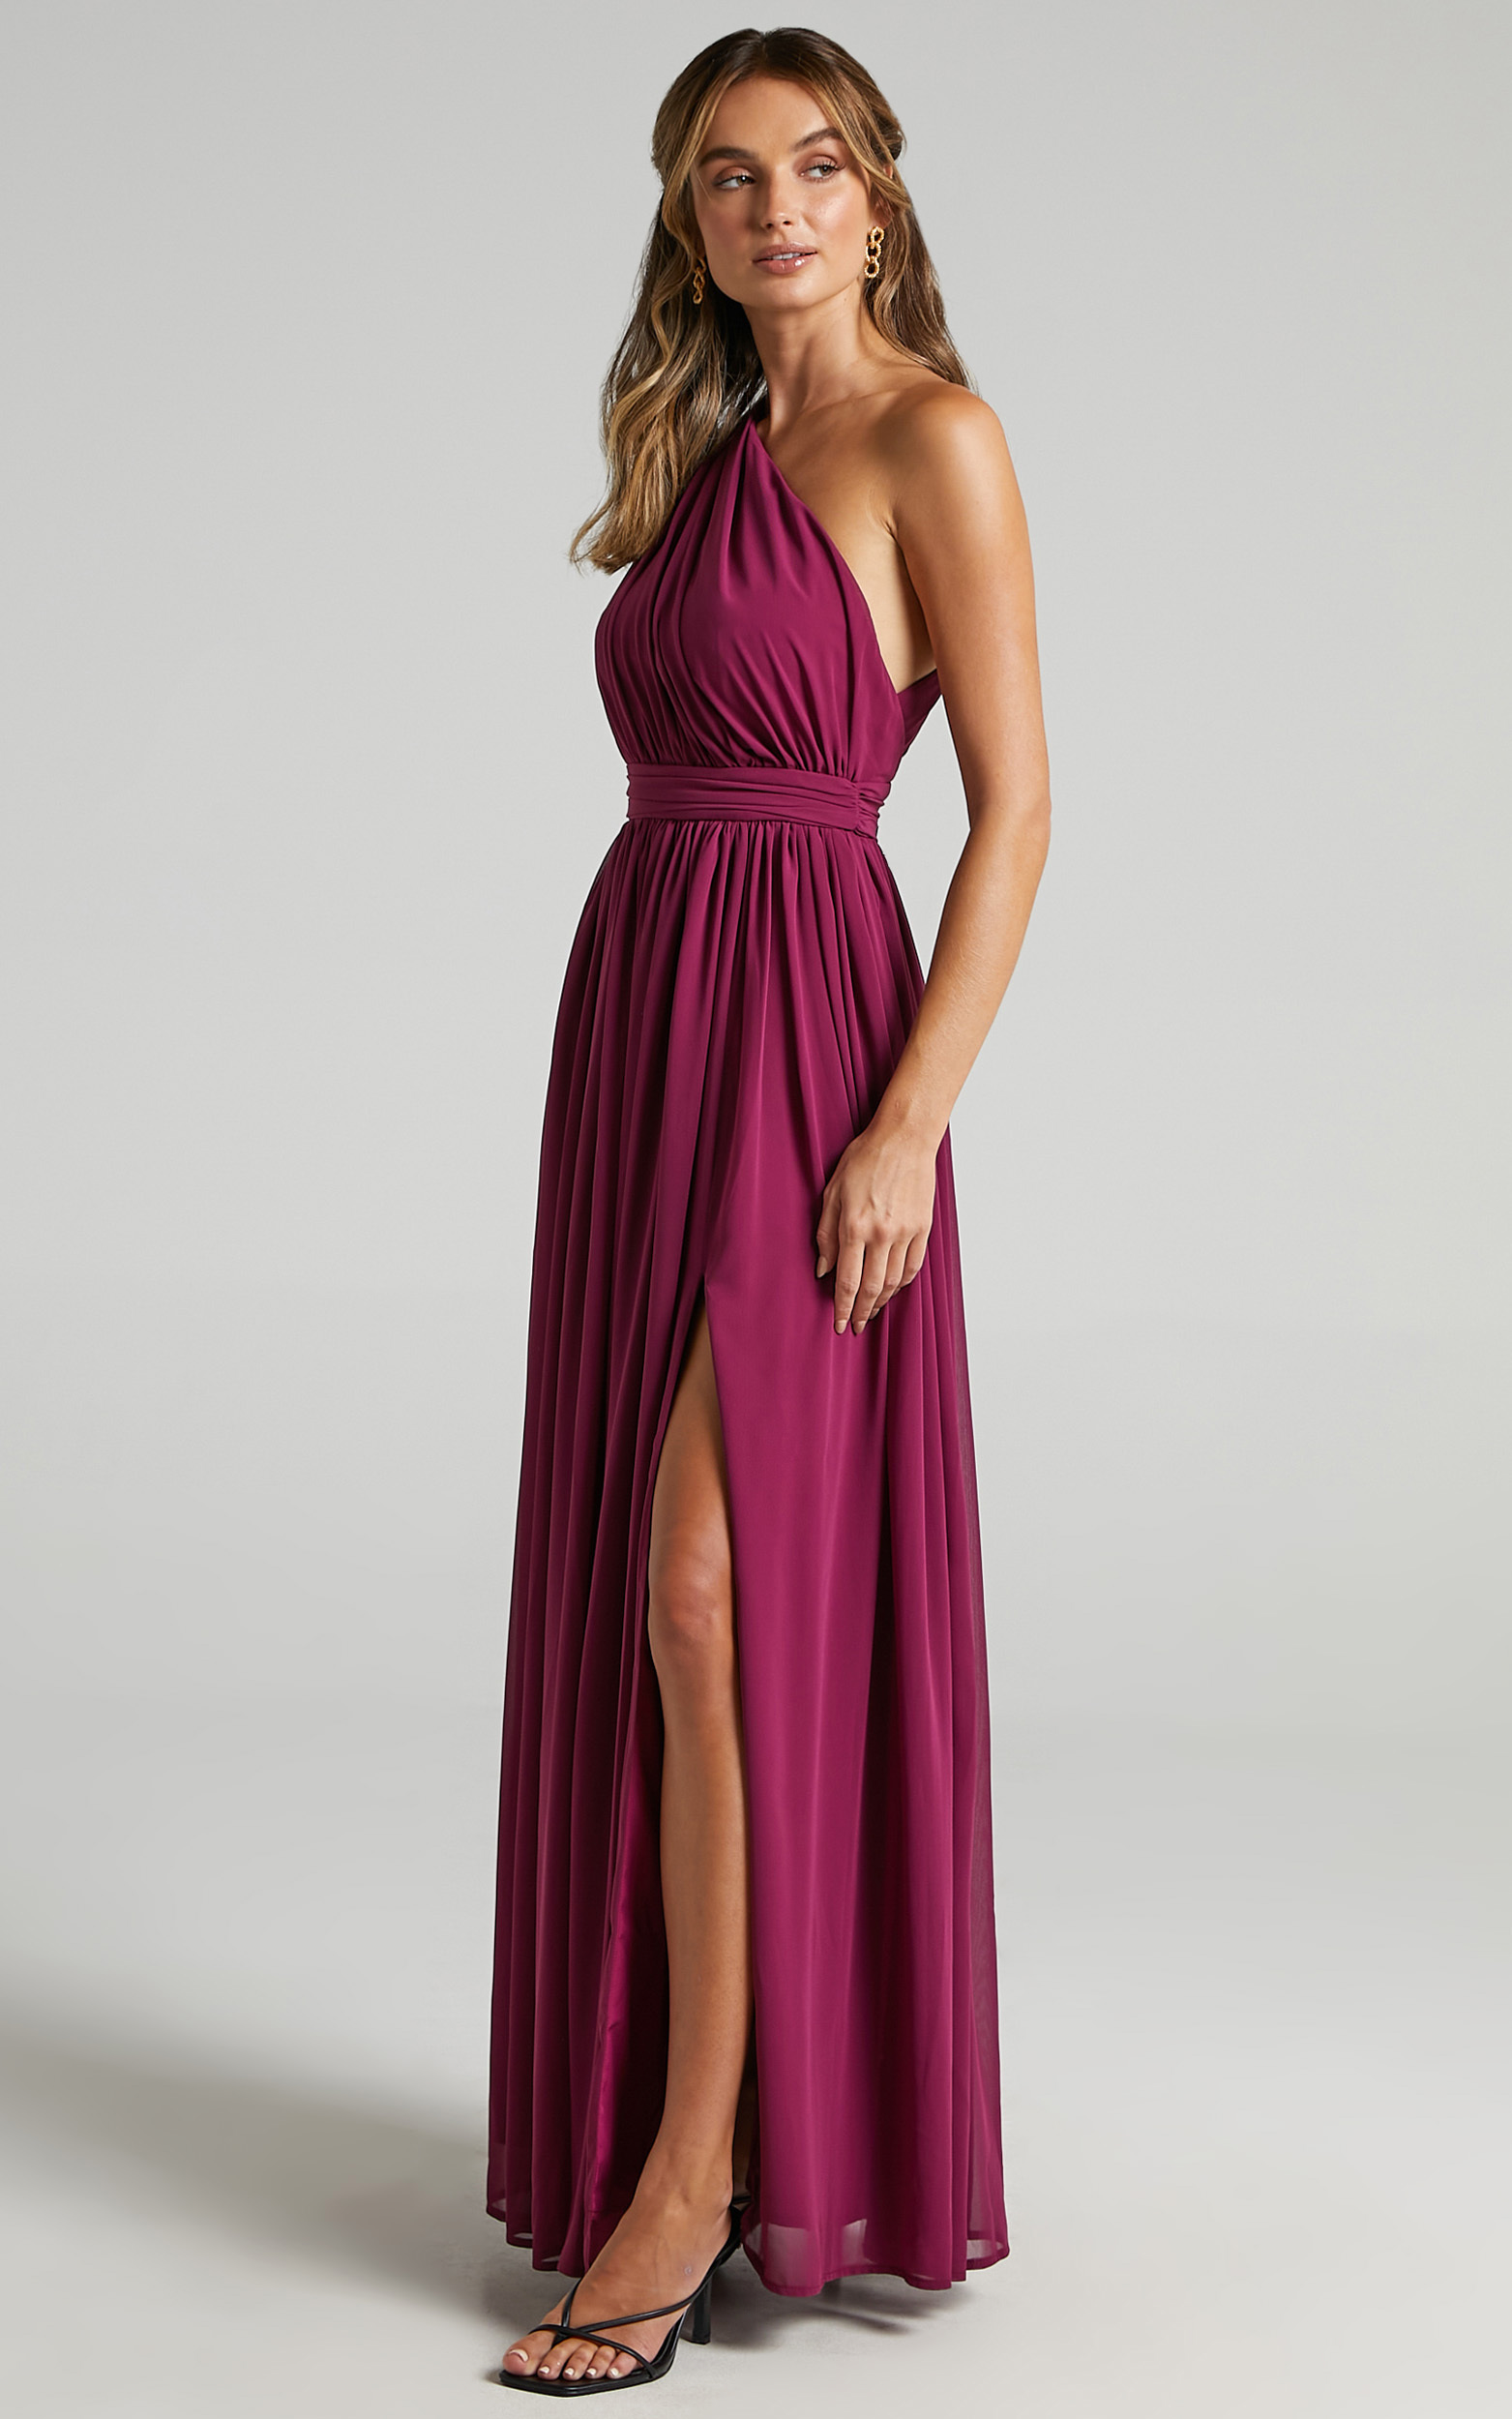 Kindred Hearts Dress in Mulberry - 06, PRP2, hi-res image number null